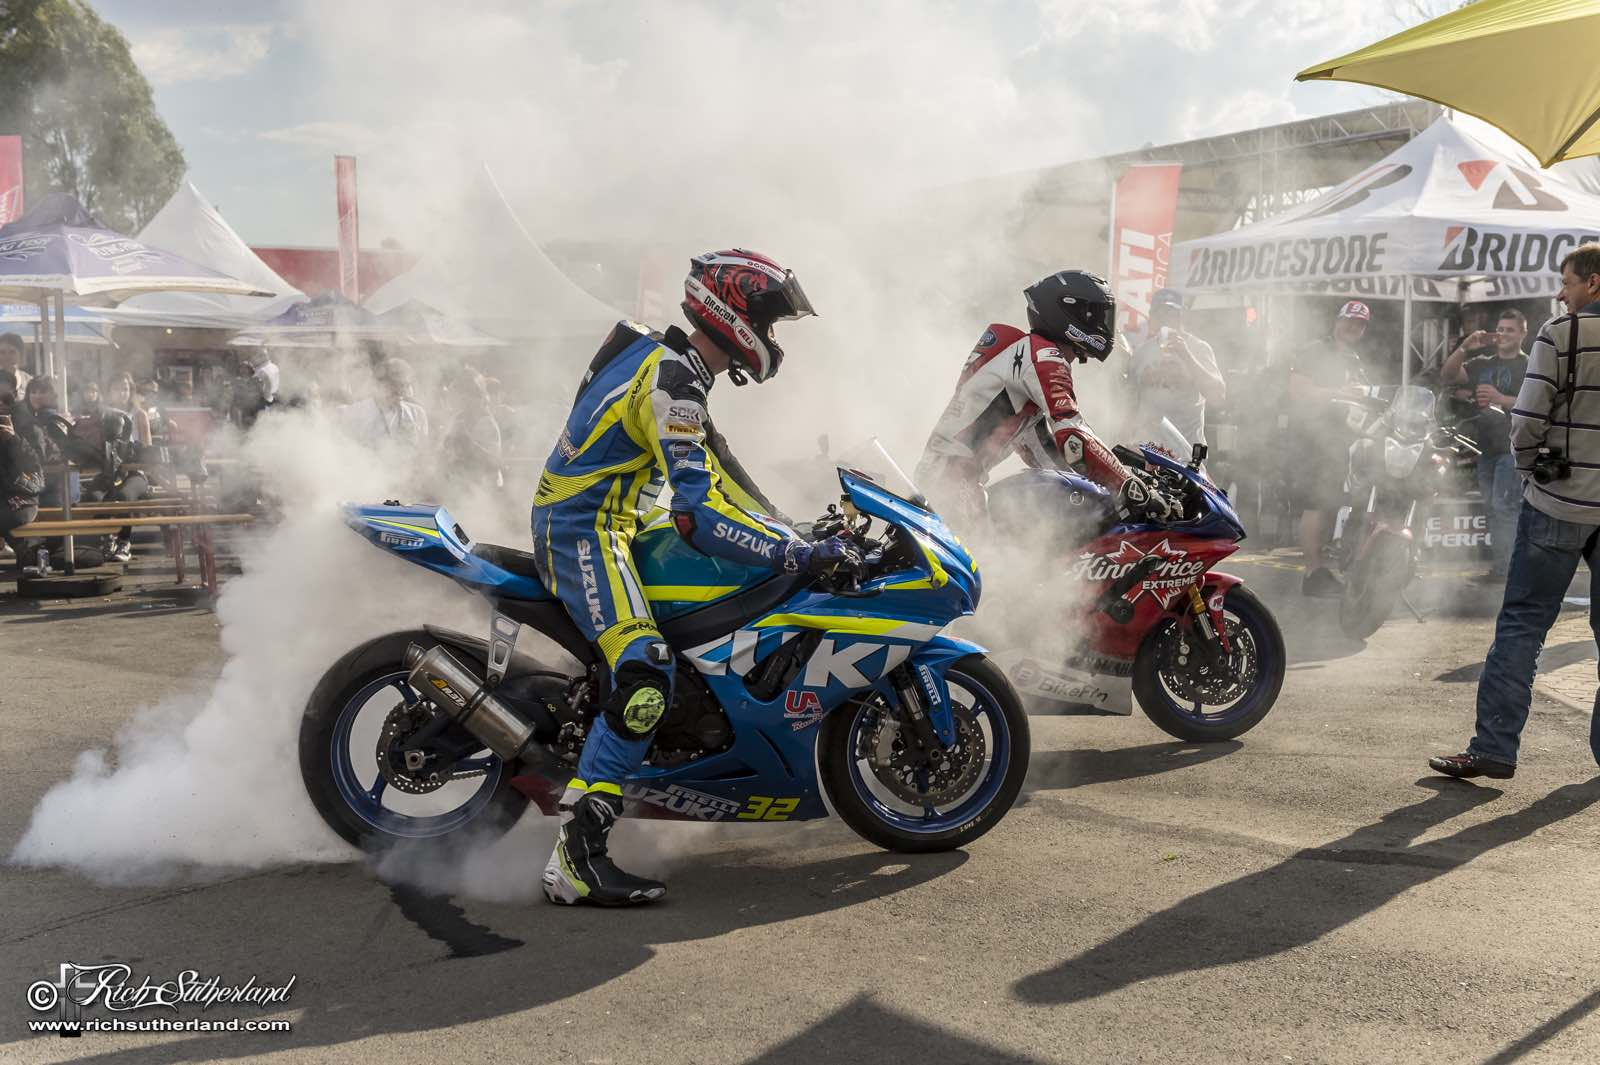 Superbike burnouts after racing at the 2018 Bike Fest